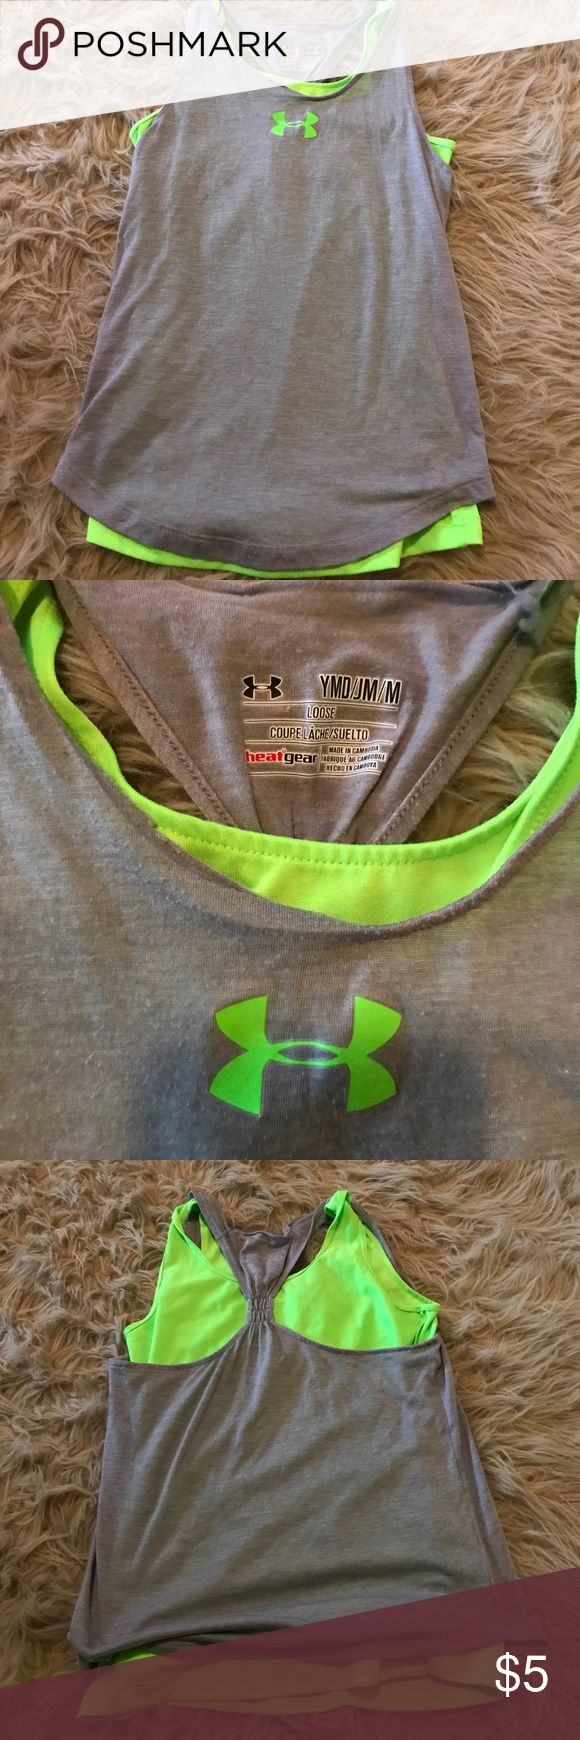 Girls Size Medium Under Armour Double Tank Super Cute Grey and Bright Green! Exceptional Condition Except Seem at Neck Coming Undone as Shown in Pic! Wear for Play or Take a Minute to Sew or Tack it! Very Nice and Really Cannot Tell When it is On! Super Cute! Size Medium or 10/12 Girls or XS in Juniors. All of My Clothes Come from a Smoke Free Home but We are Pet Friendly. They May have Some Fuzz on Them from Taking Picks on Sheep Rug but Will NOT Affect the Quality of the Item! Bundle and…